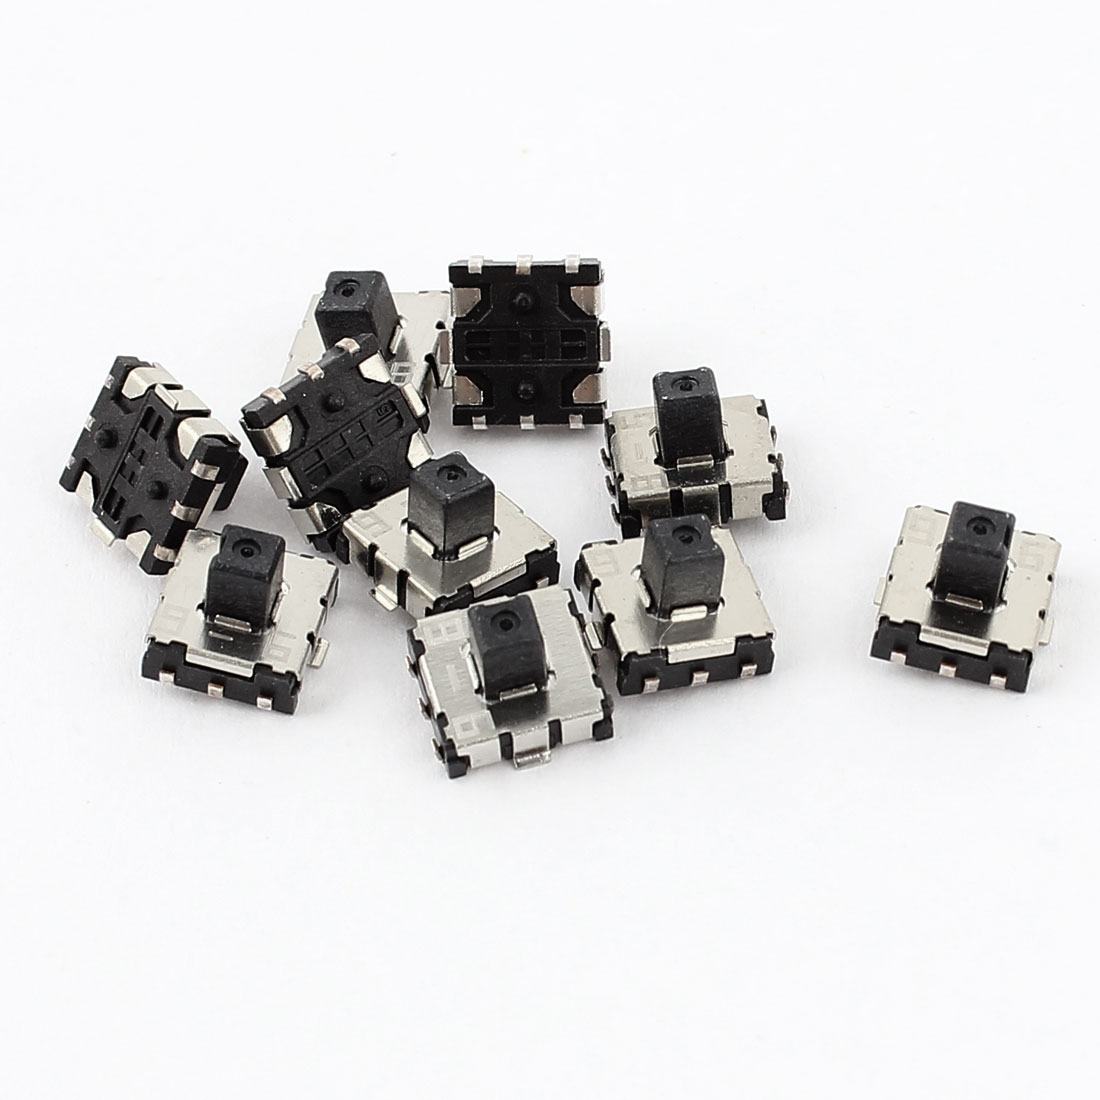 10 Pcs 6 Pin 5 Position Momentary Push Button SMD SMT Mini Tactile Switch